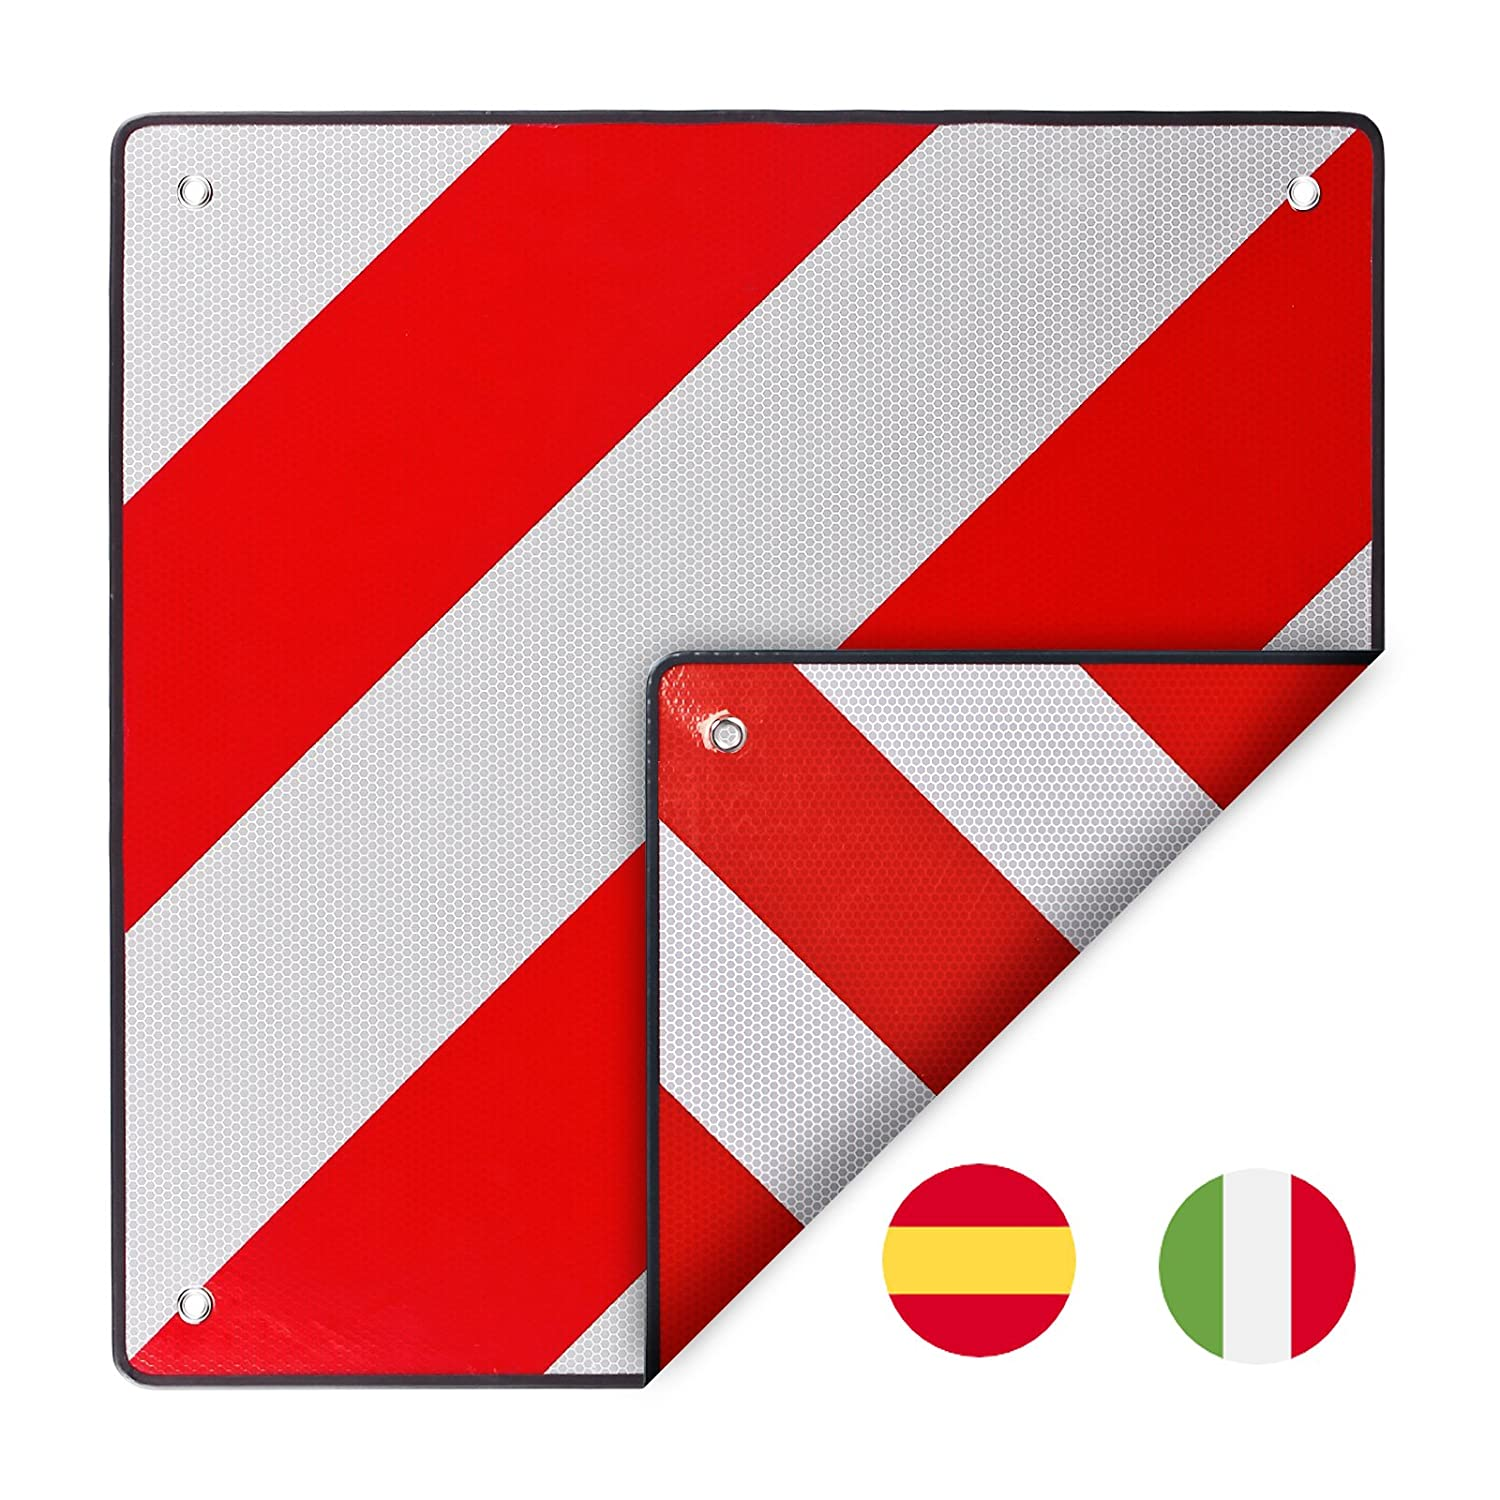 Reflective Warning Sign Italy and Spain Aluminium) 50  x 50  cm in Red/White ECD